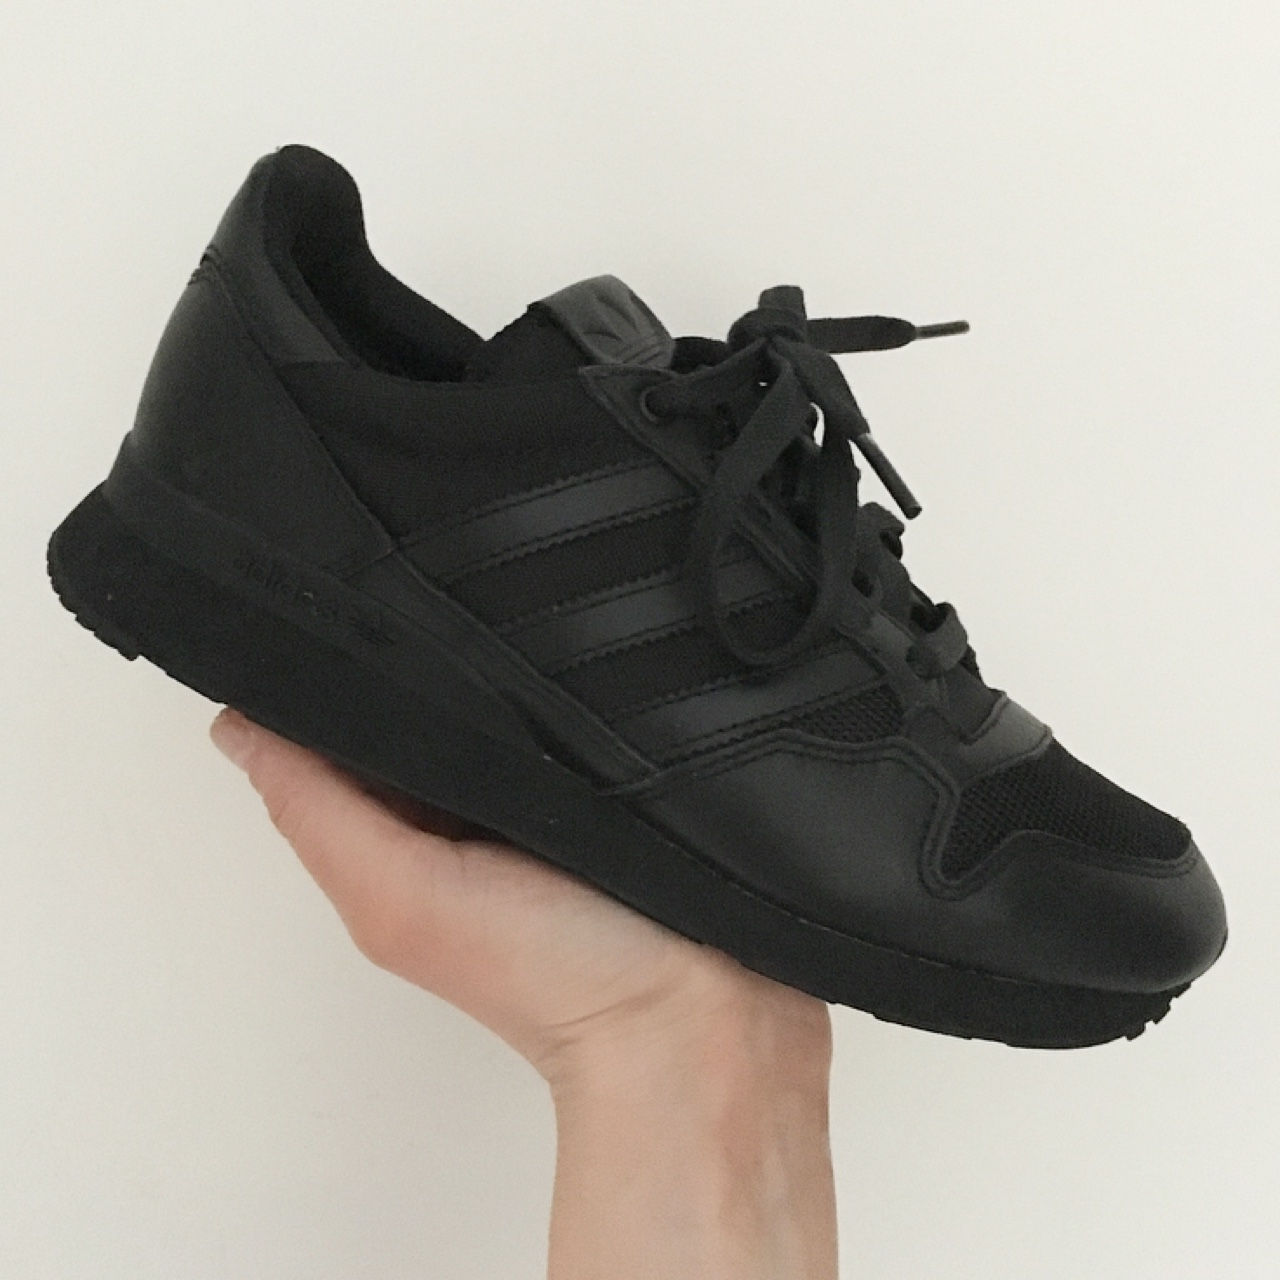 All Black Adidas Originals ZX 750 Cool Trainers Men's Running Shoes AQ5812 SIZE 40 44